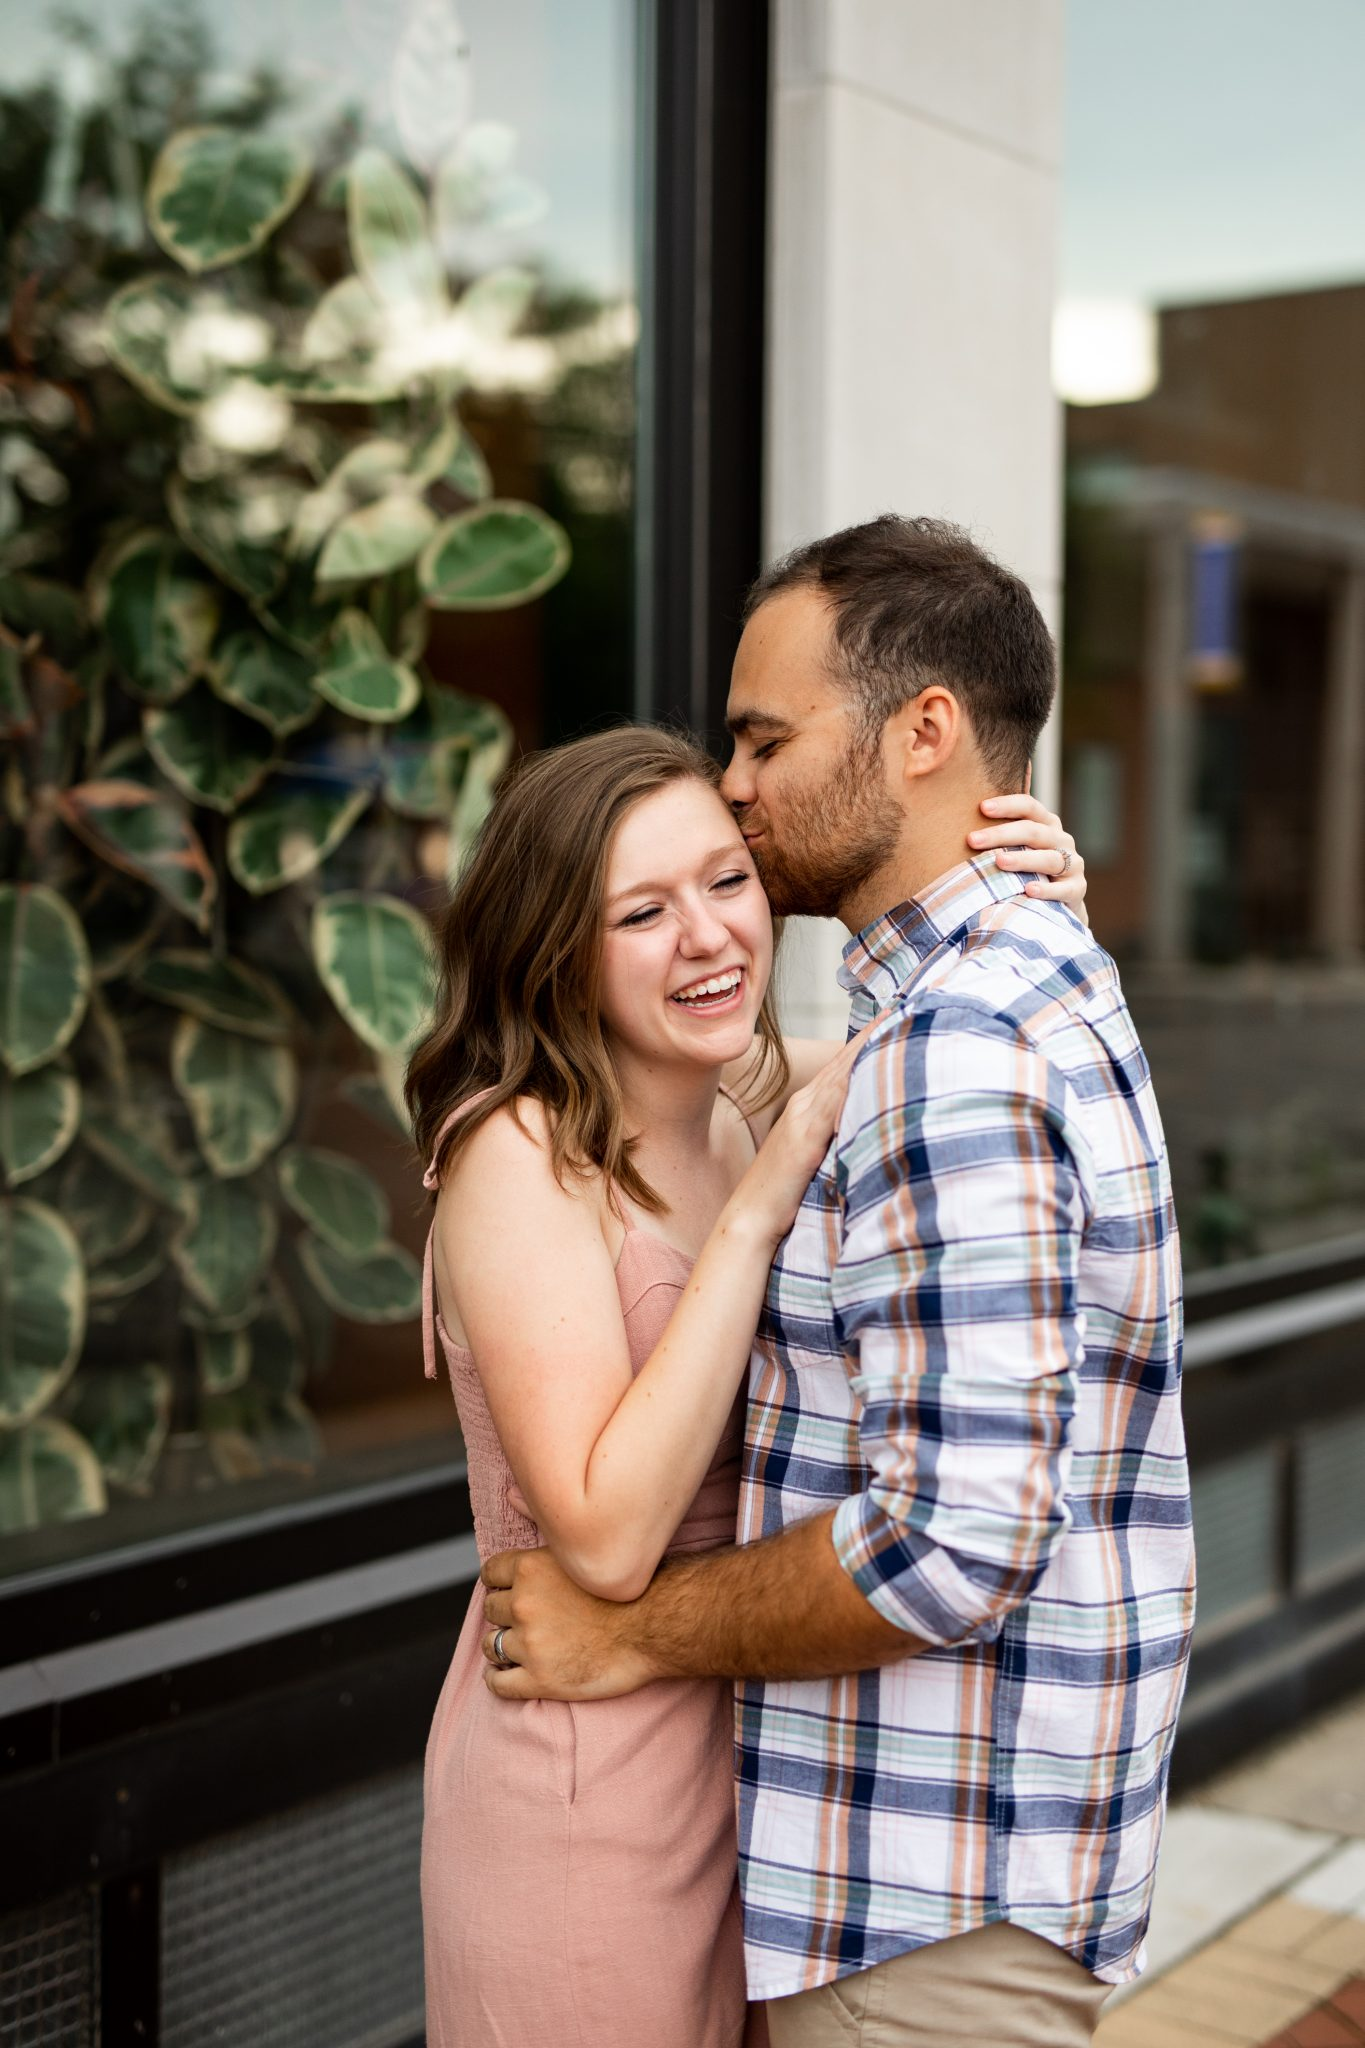 Noah-Abbi-Indiana-Couples-Session-94